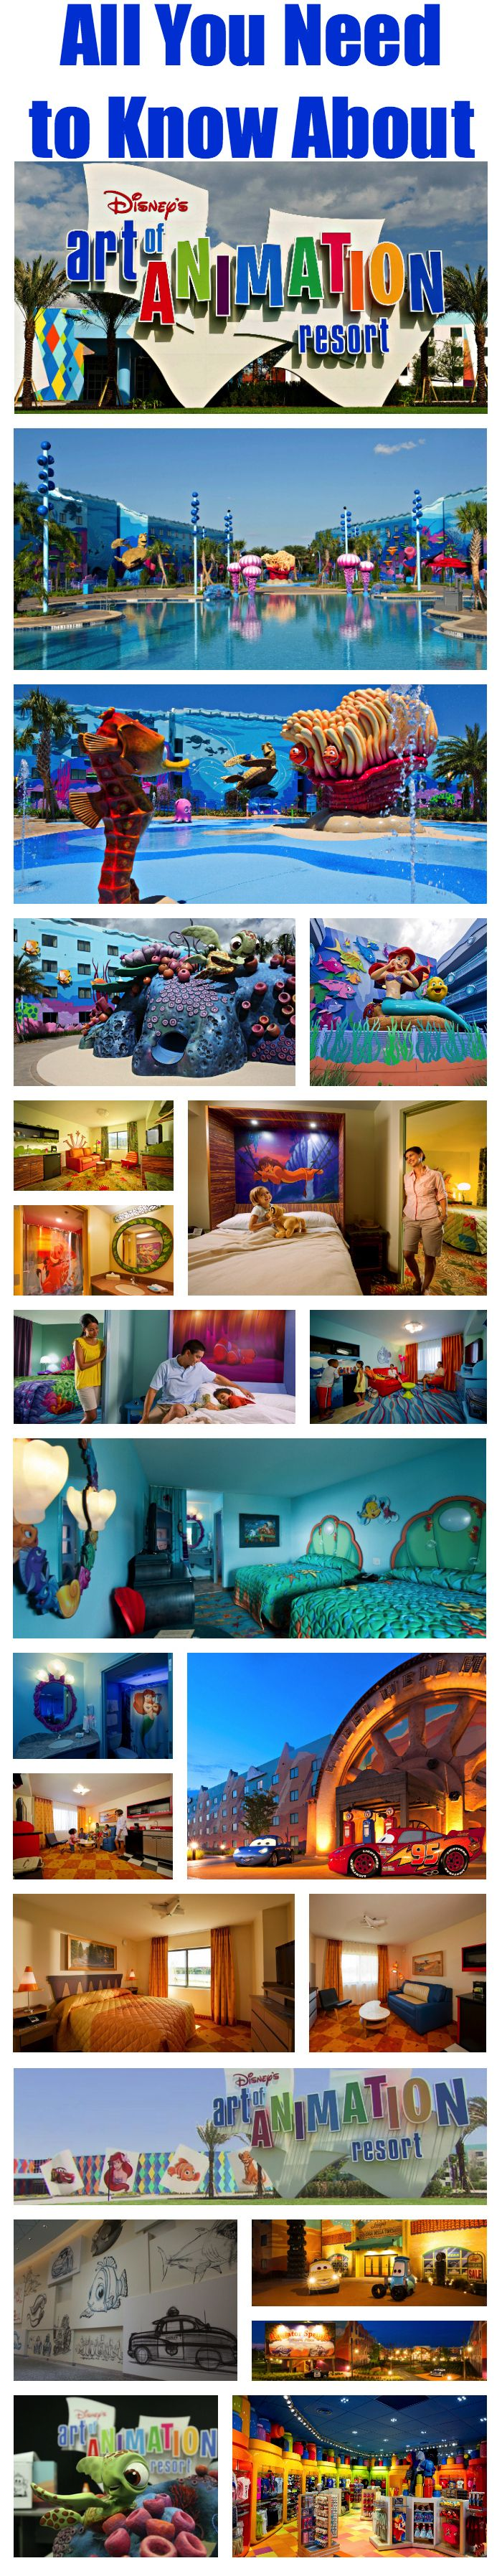 1 of my favorite resorts - Disney's Art of Animation Resort Review - Fun for Families of All Sizes